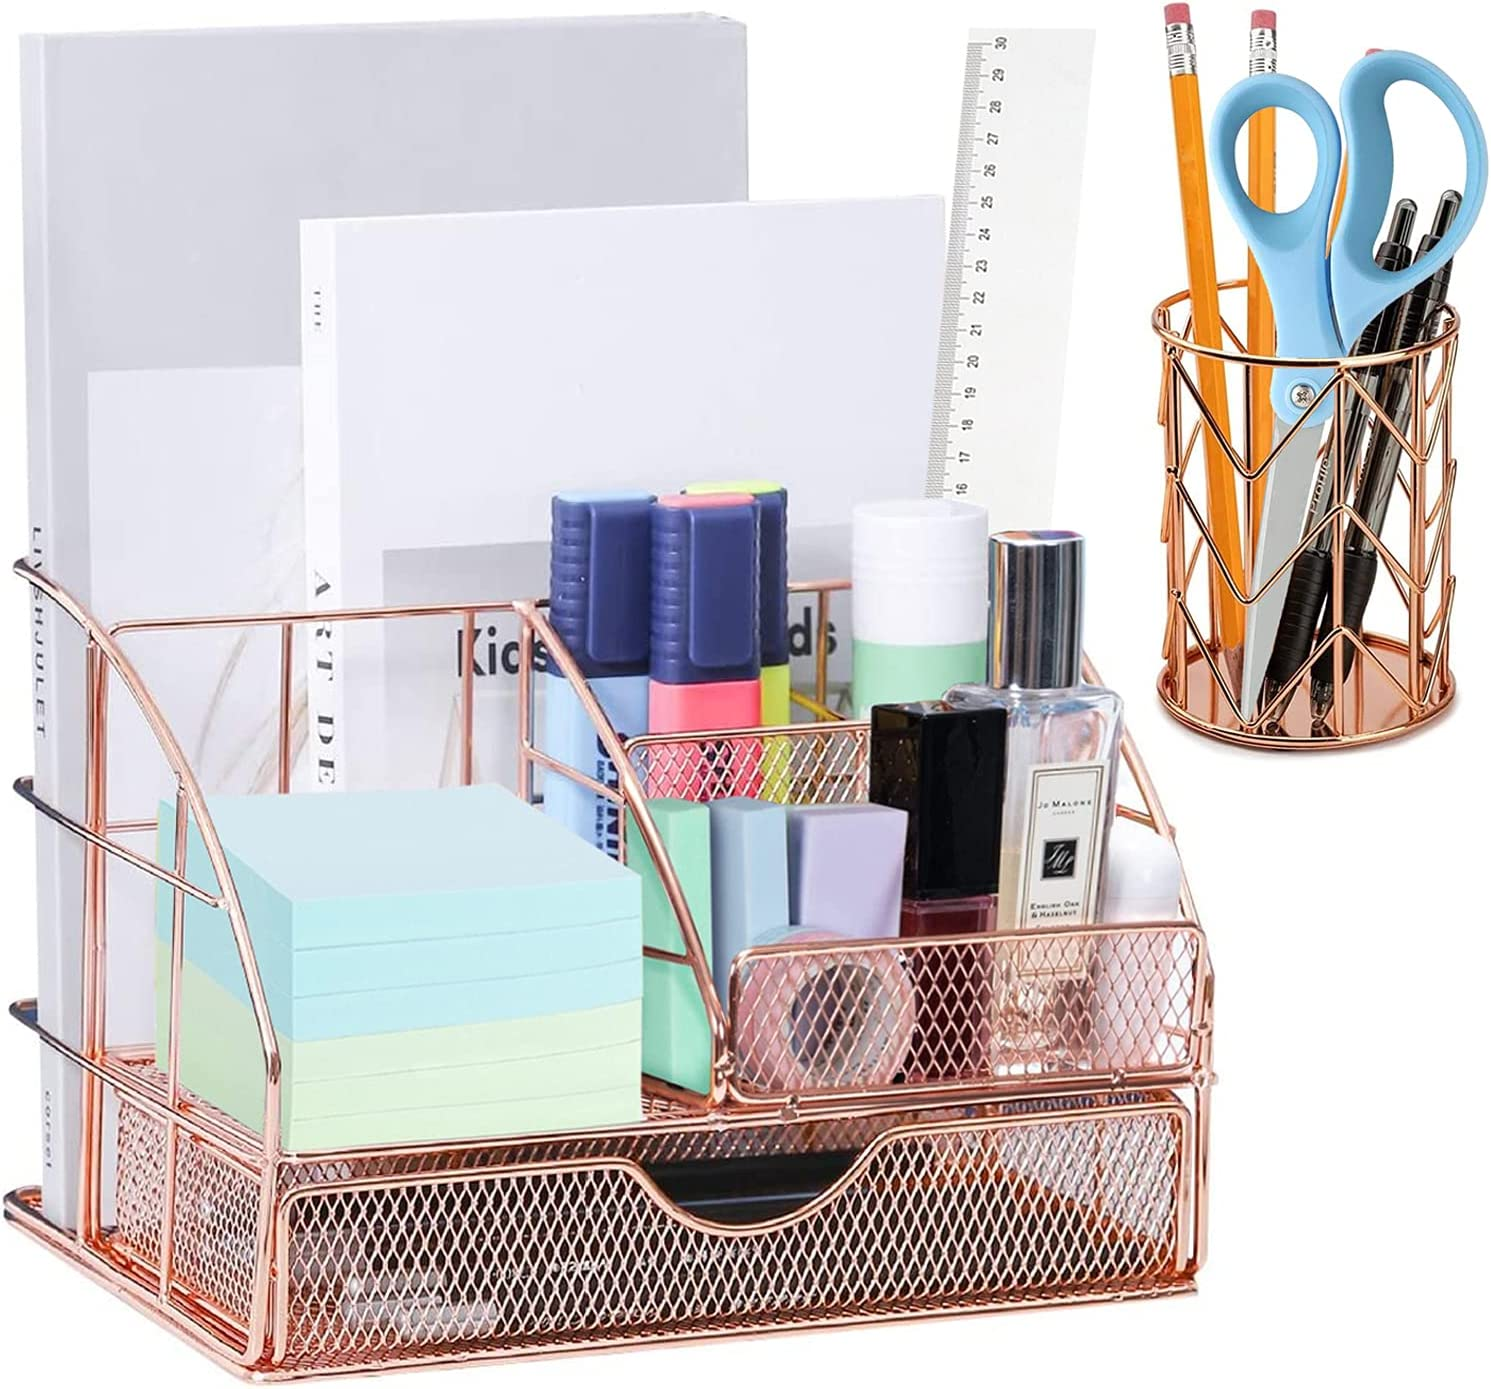 Desk Organizers and Accessories for All In Elegant MetalM Max 87% OFF One Women